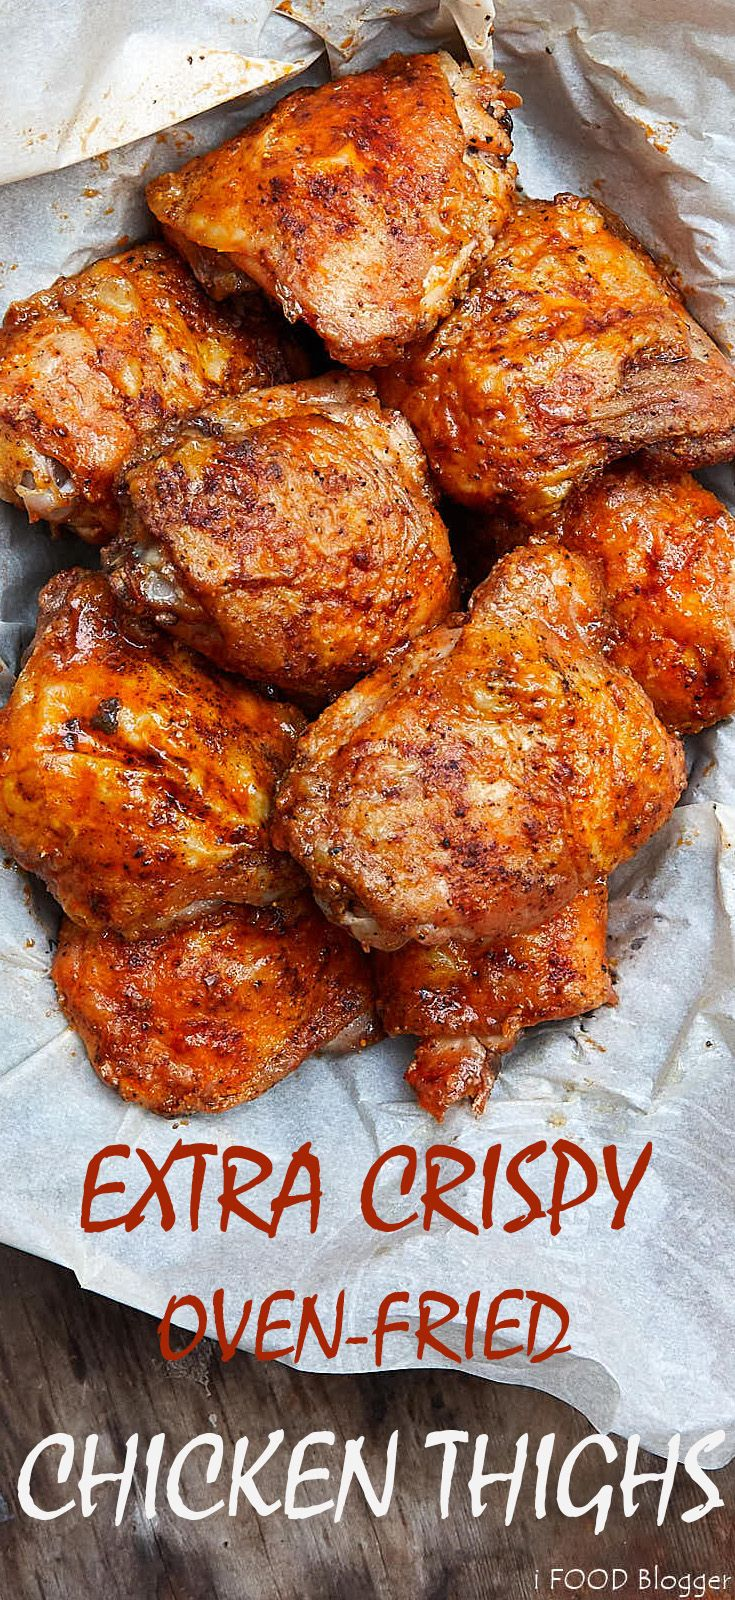 Oven-fried chicken thighs – extra crispy skins, tender and succulent inside. Eas…